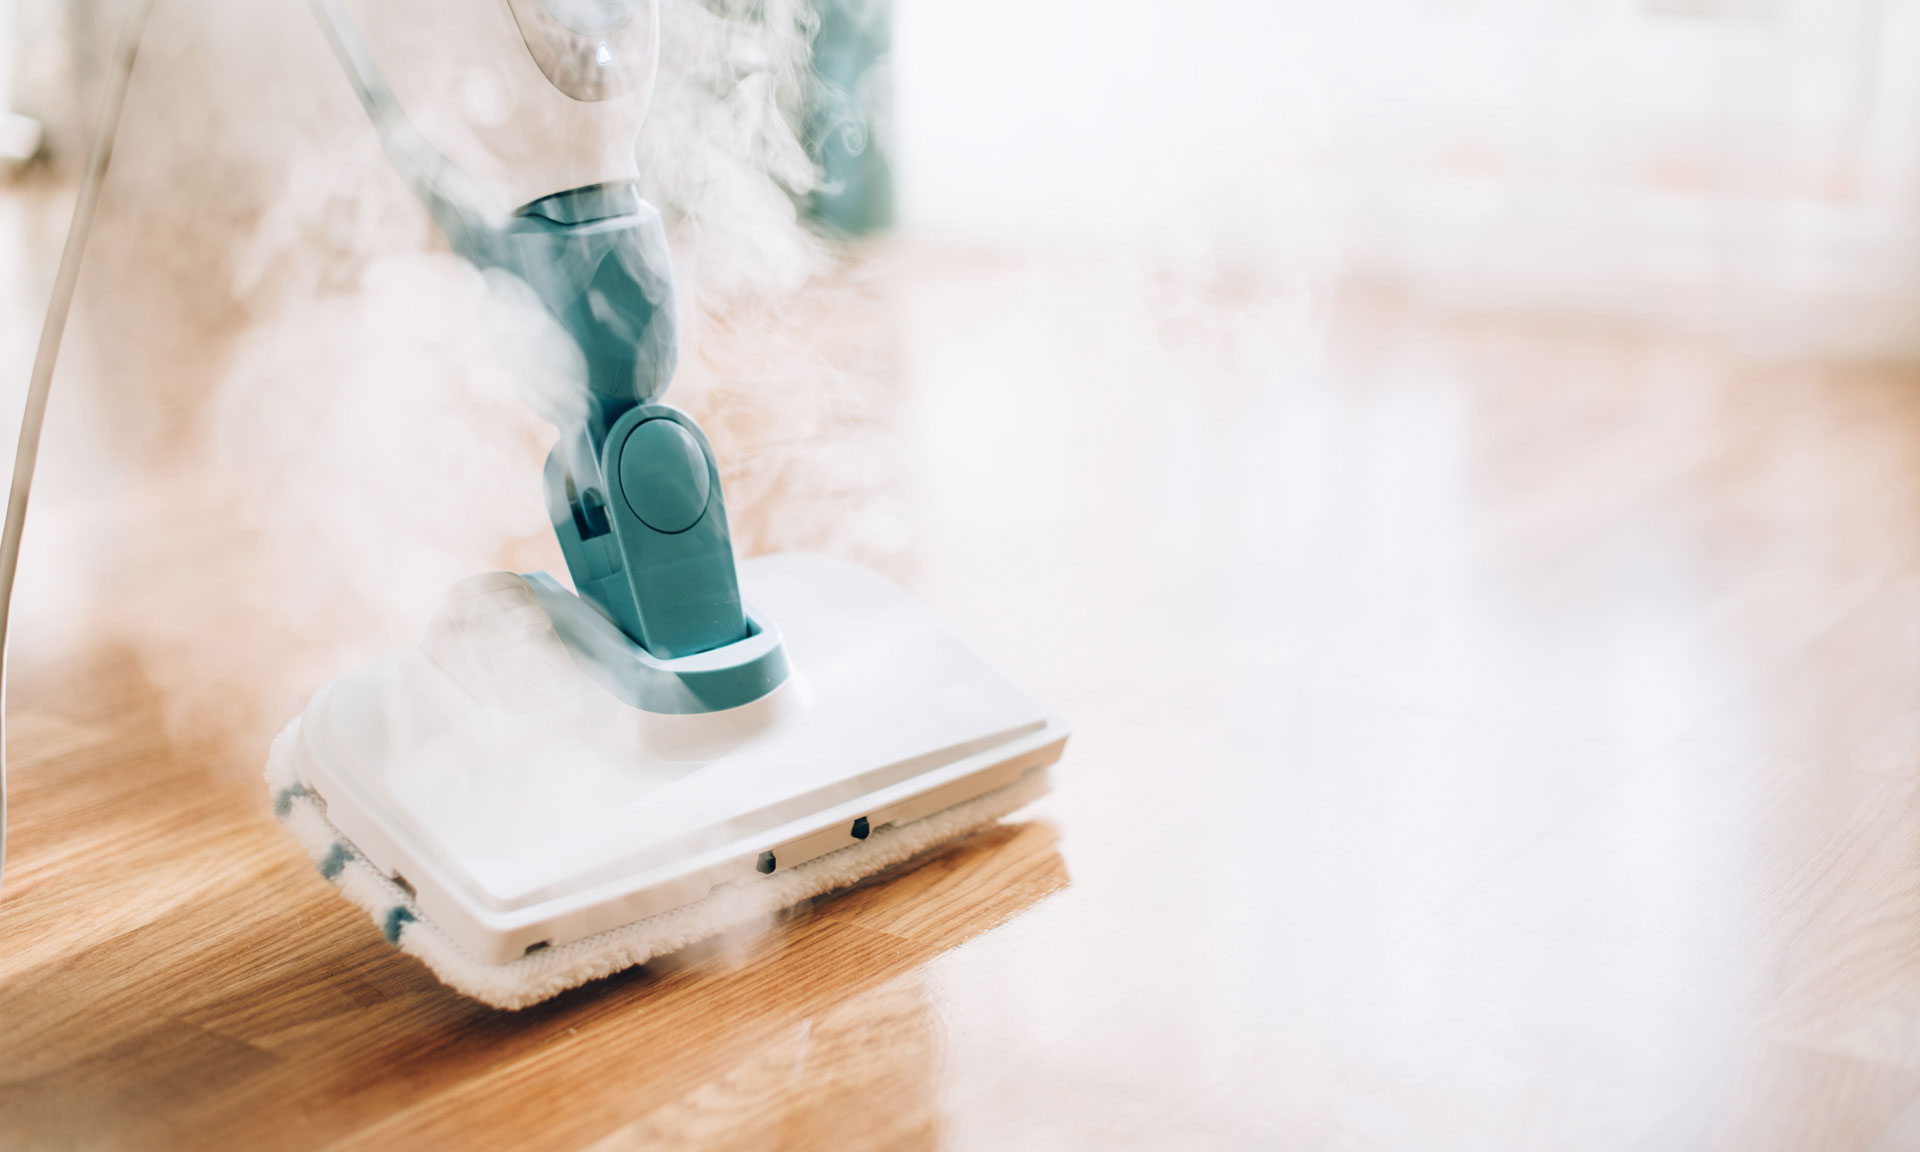 can steam cleaners kill household germs